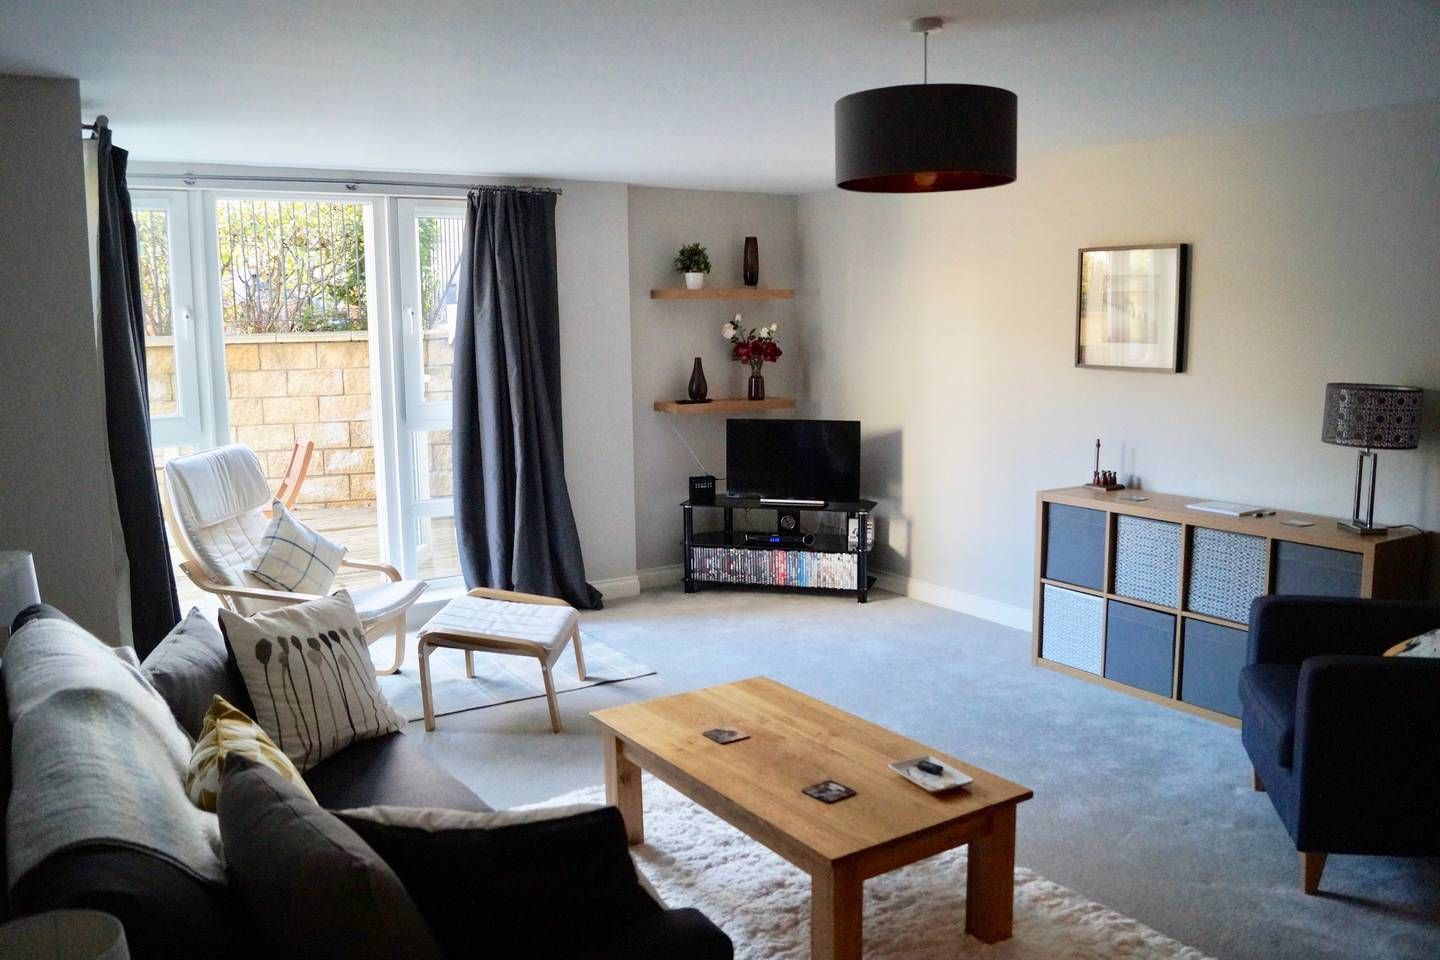 Spacious 2 Bedroom Flat - Parking and Outdoor Area - Flats ...